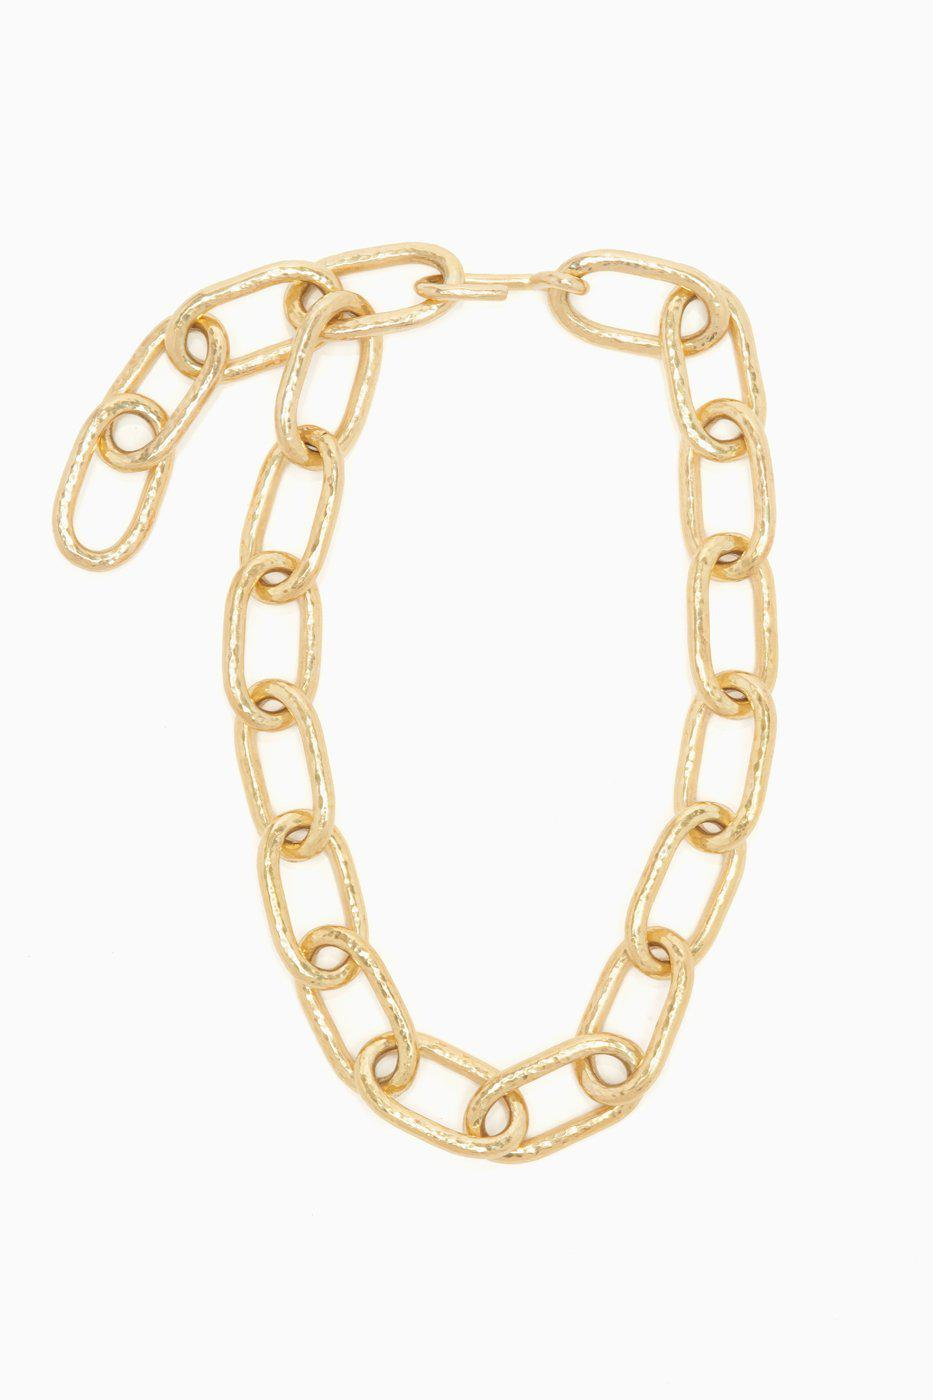 Barbara Hand Hammered Chain Necklace